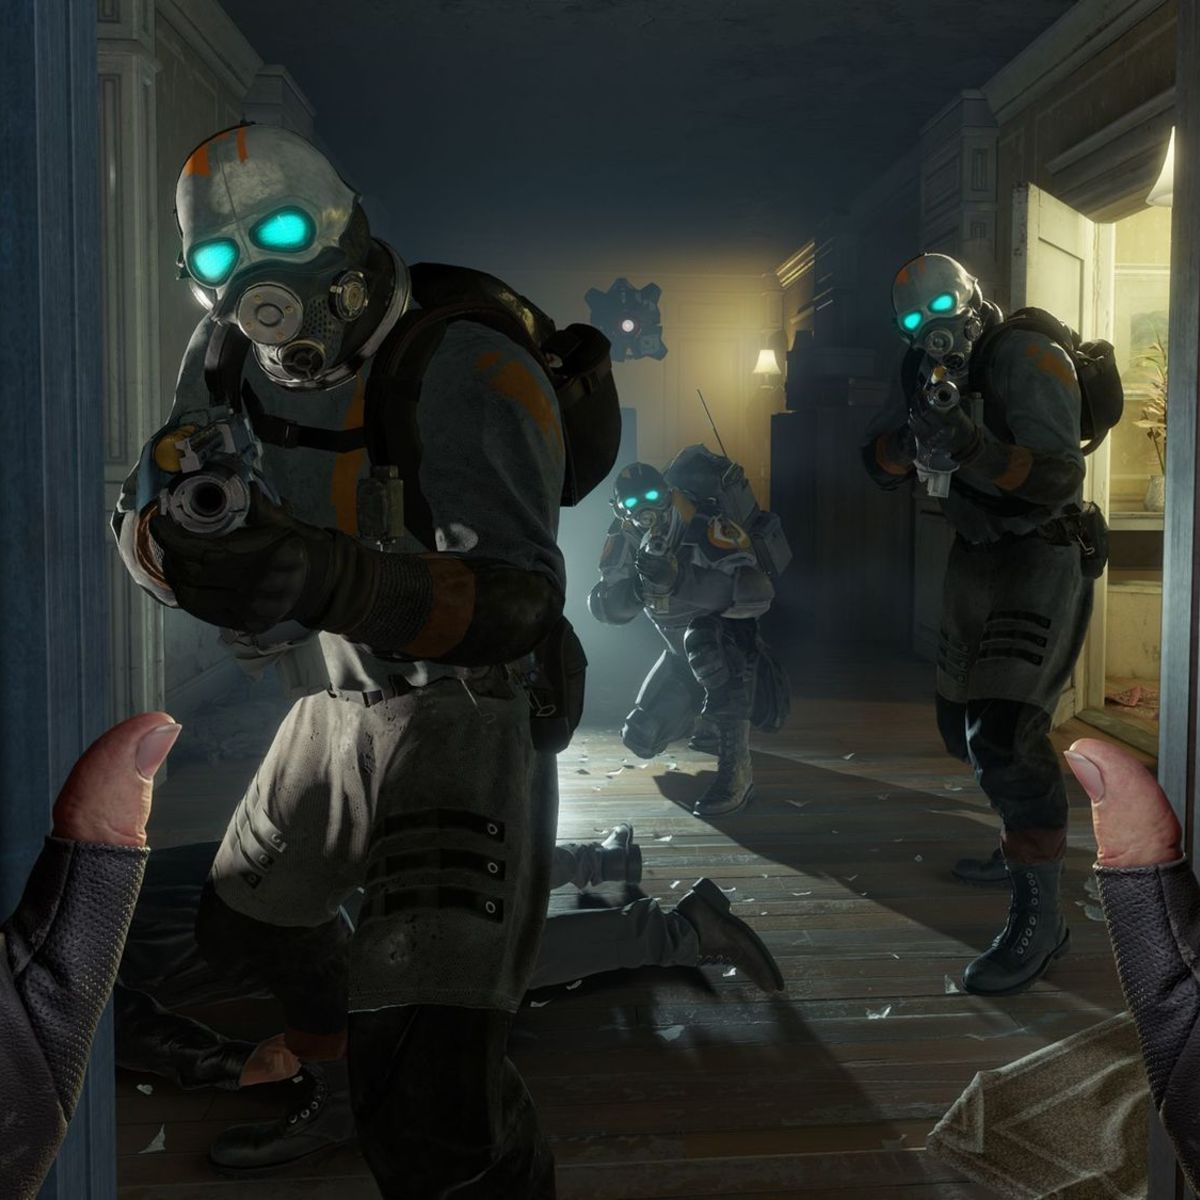 A scene from VR game Half Life Alyx